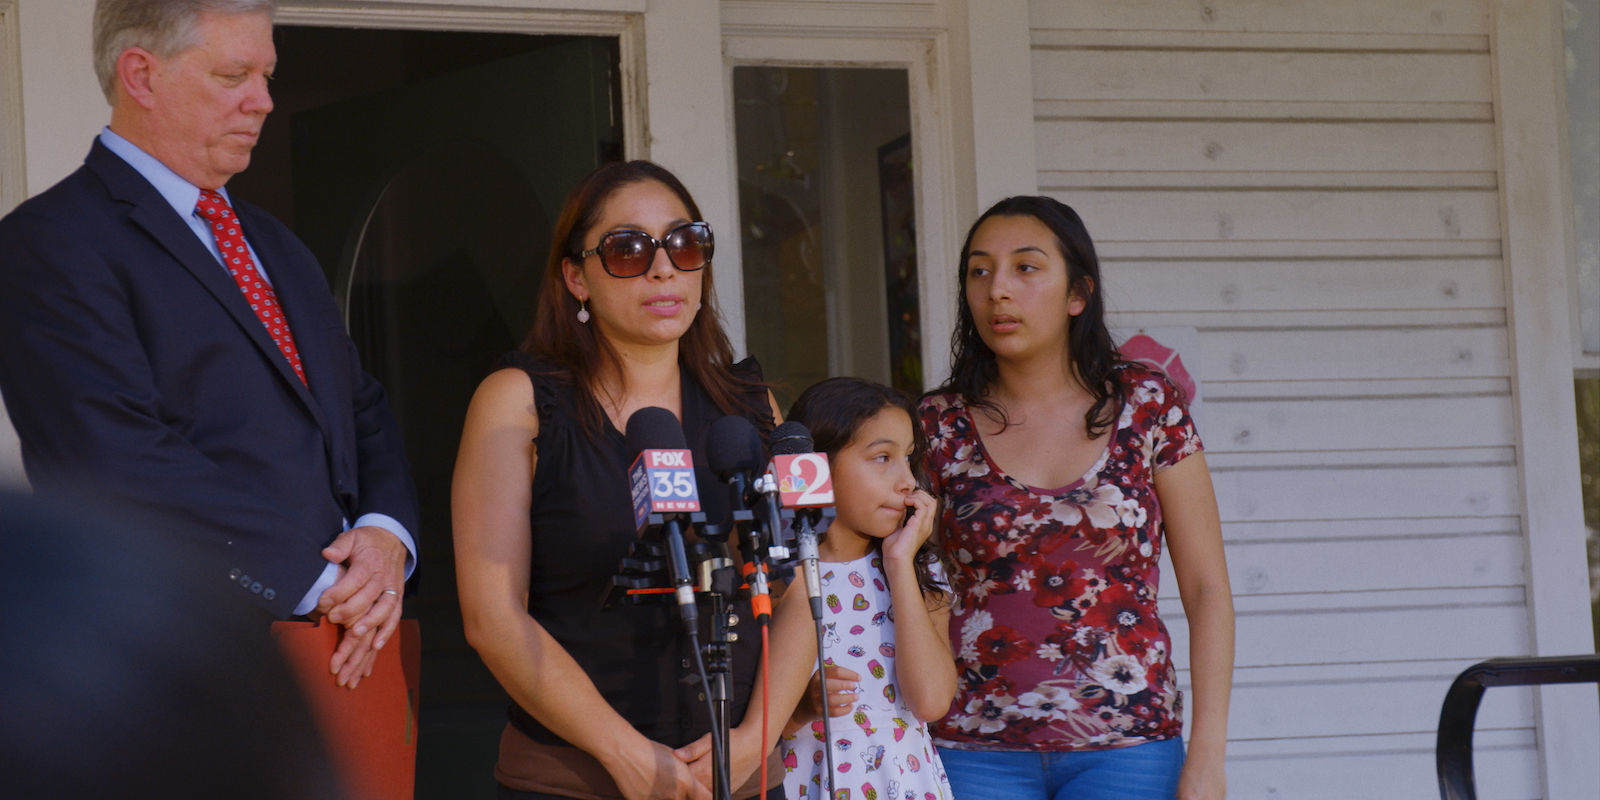 TRAILER: This Netflix Doc Series Is an Intimate Look at Undocumented Families Facing Deportation